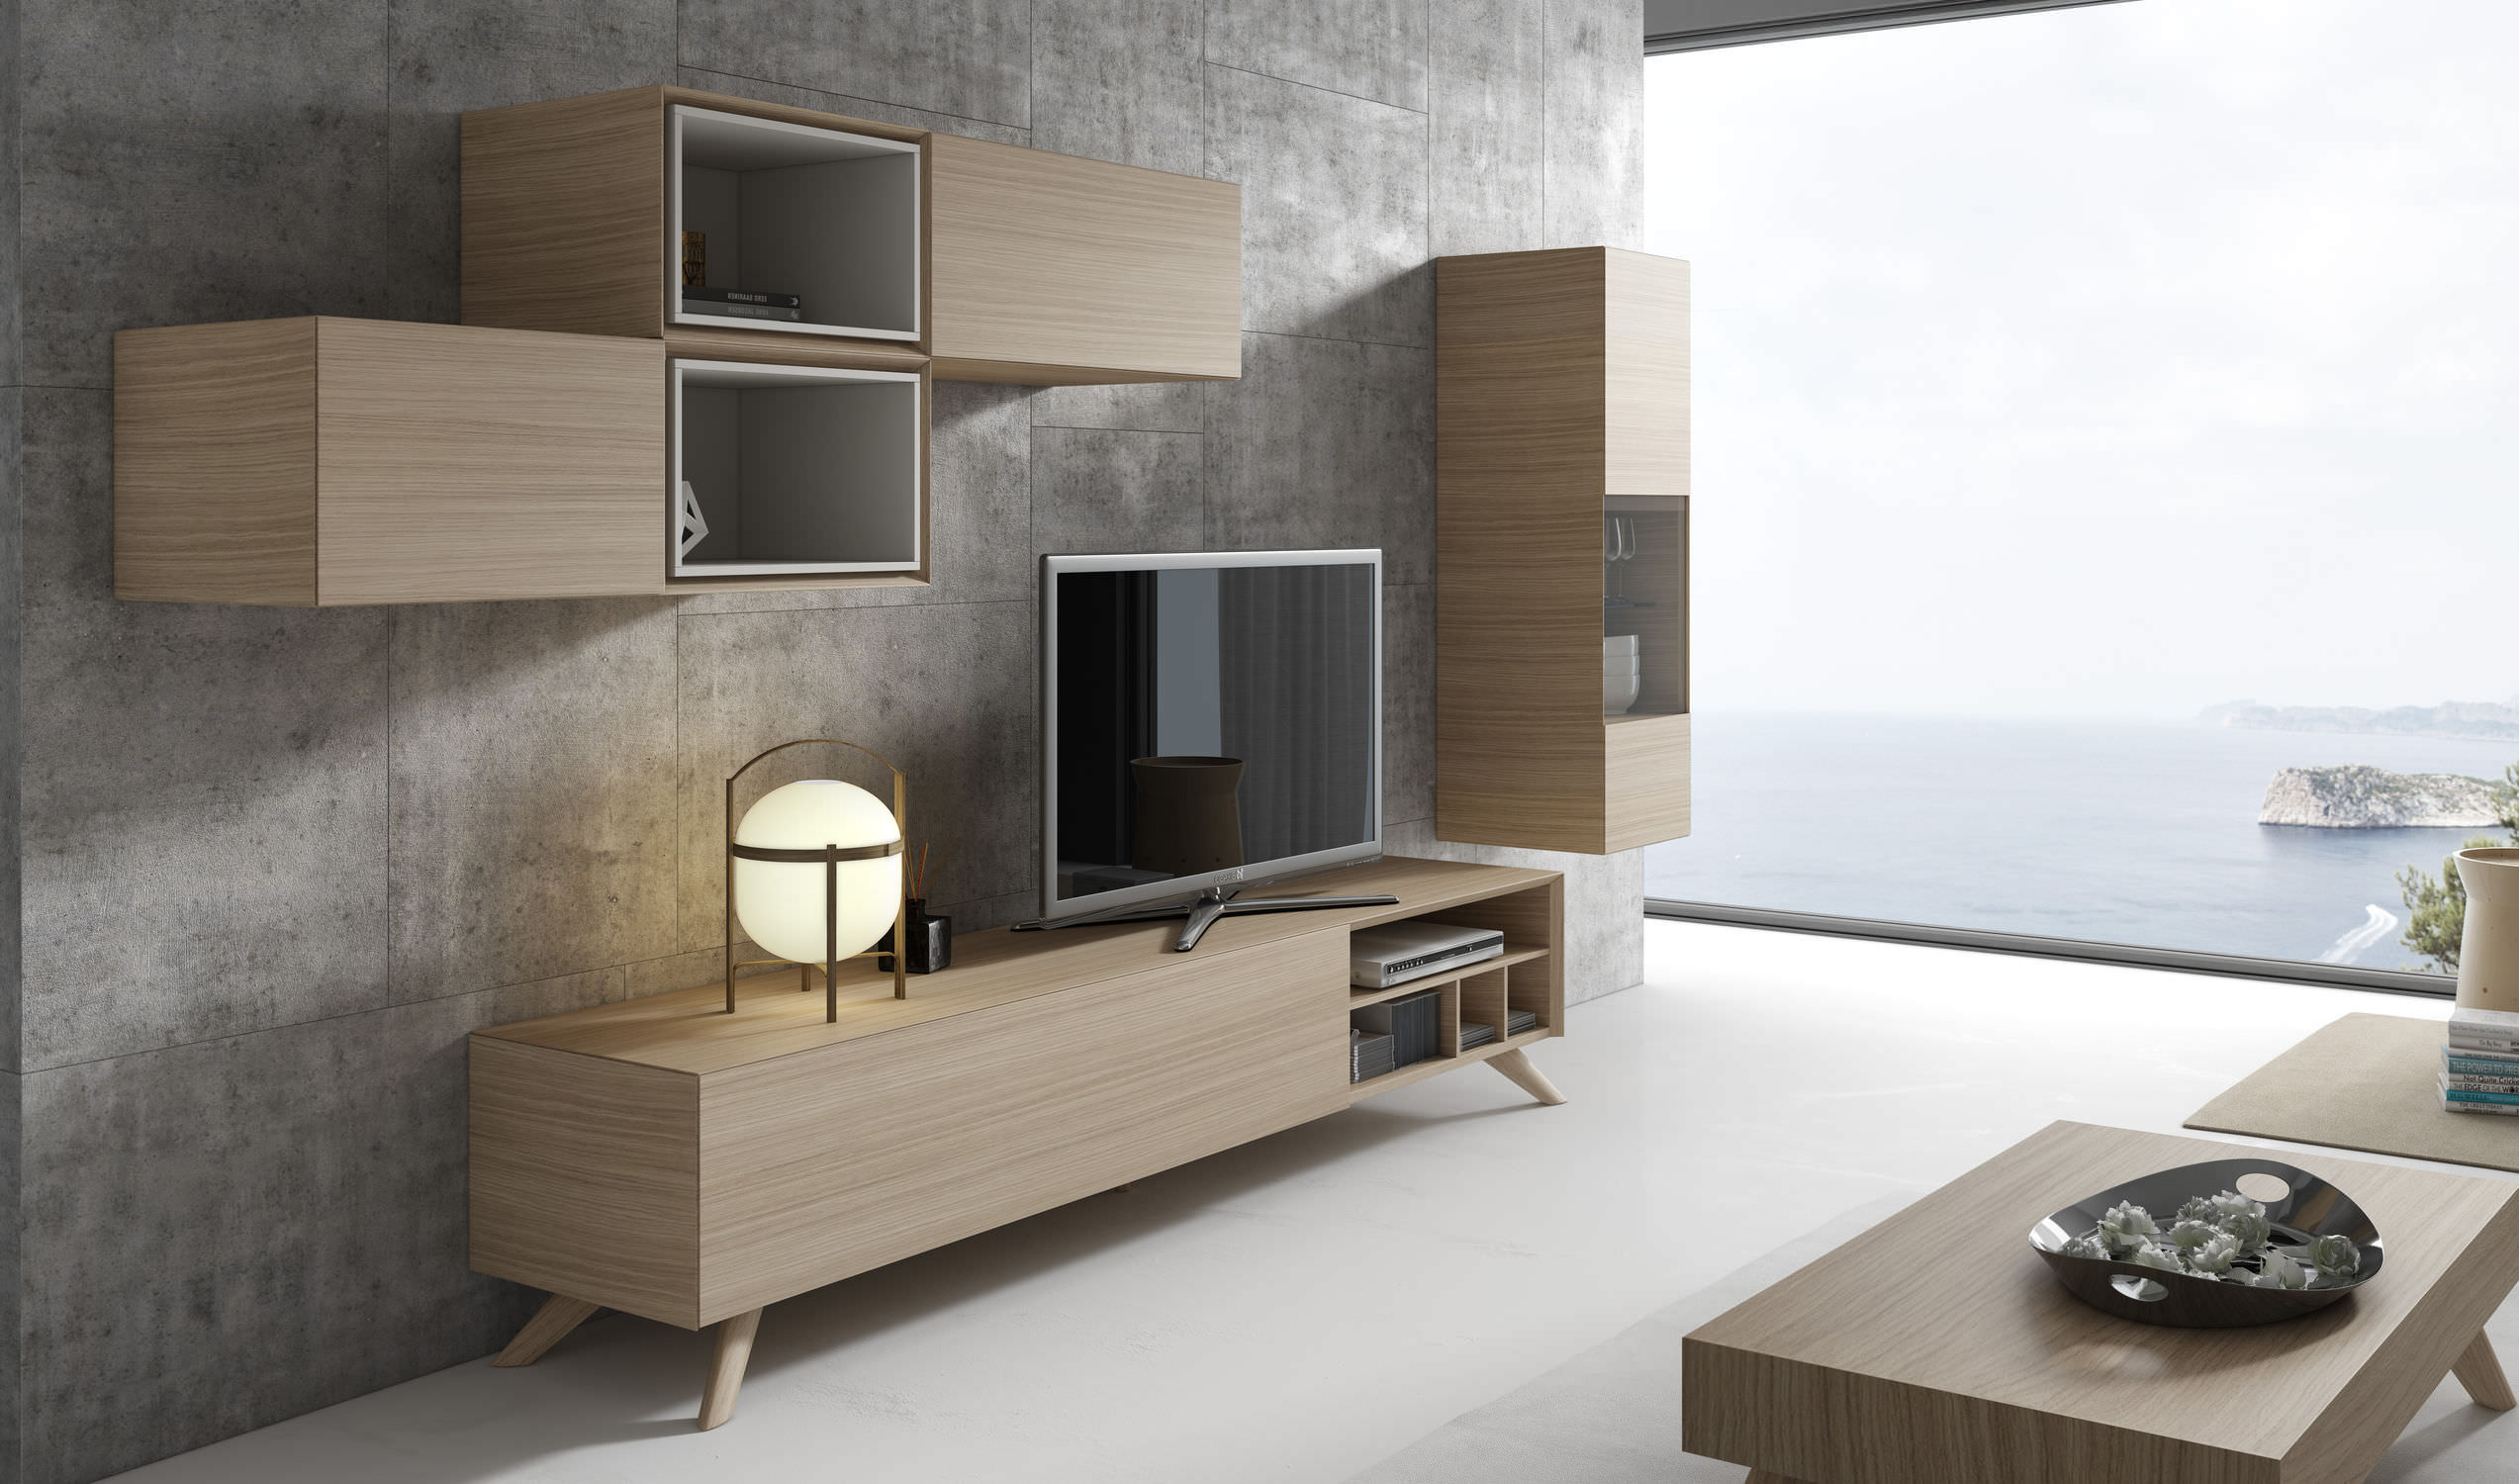 Ensemble Mural Tv Contemporain En Bois Ginza 309 A Brito # Meuble Modulable